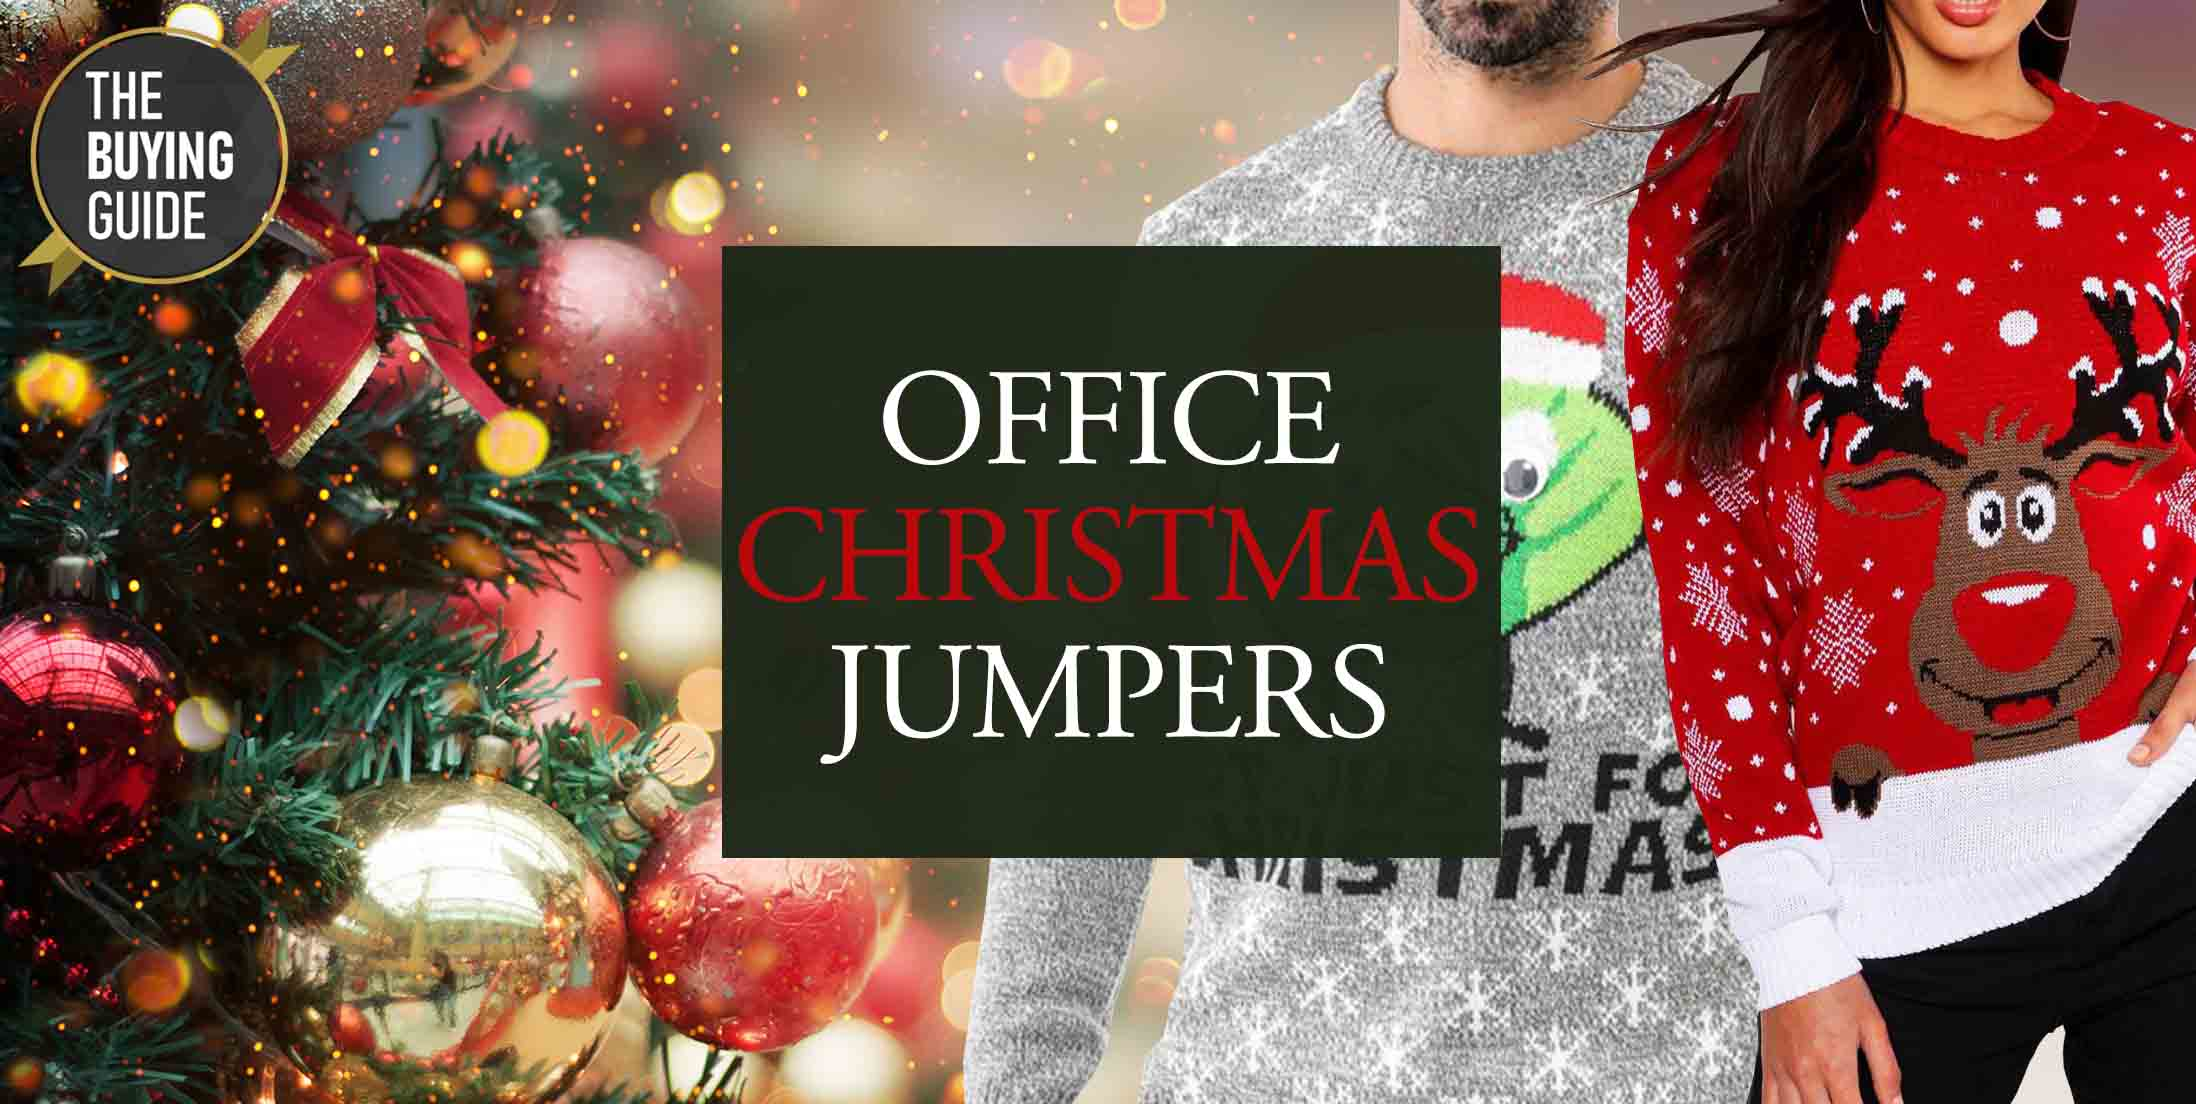 Office Christmas Jumpers